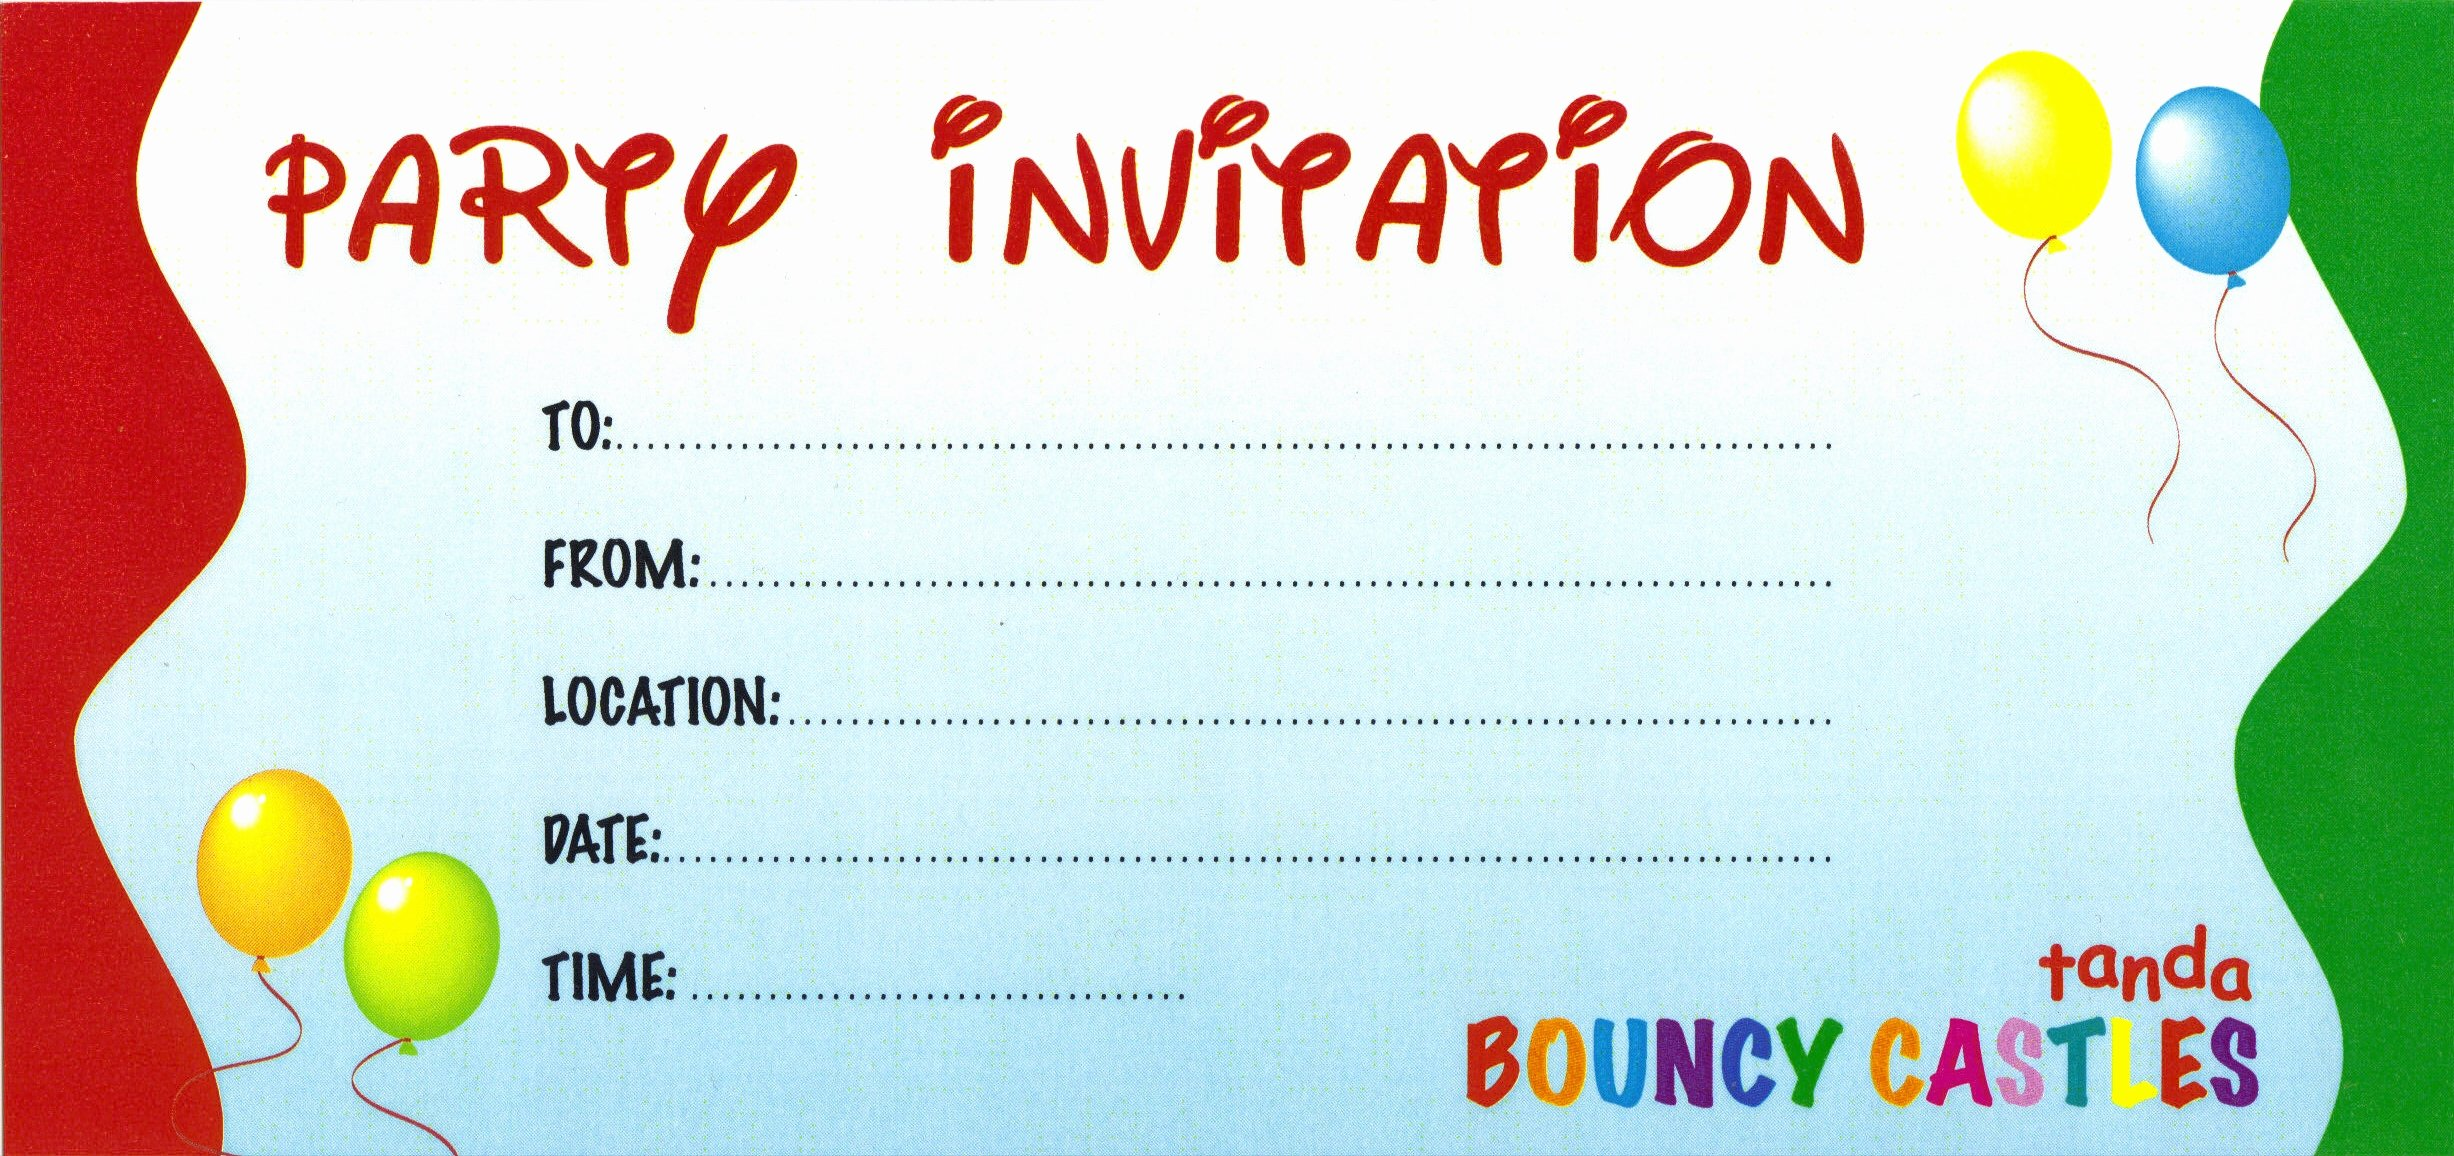 Party Invitations Simple Party Invite Template Design